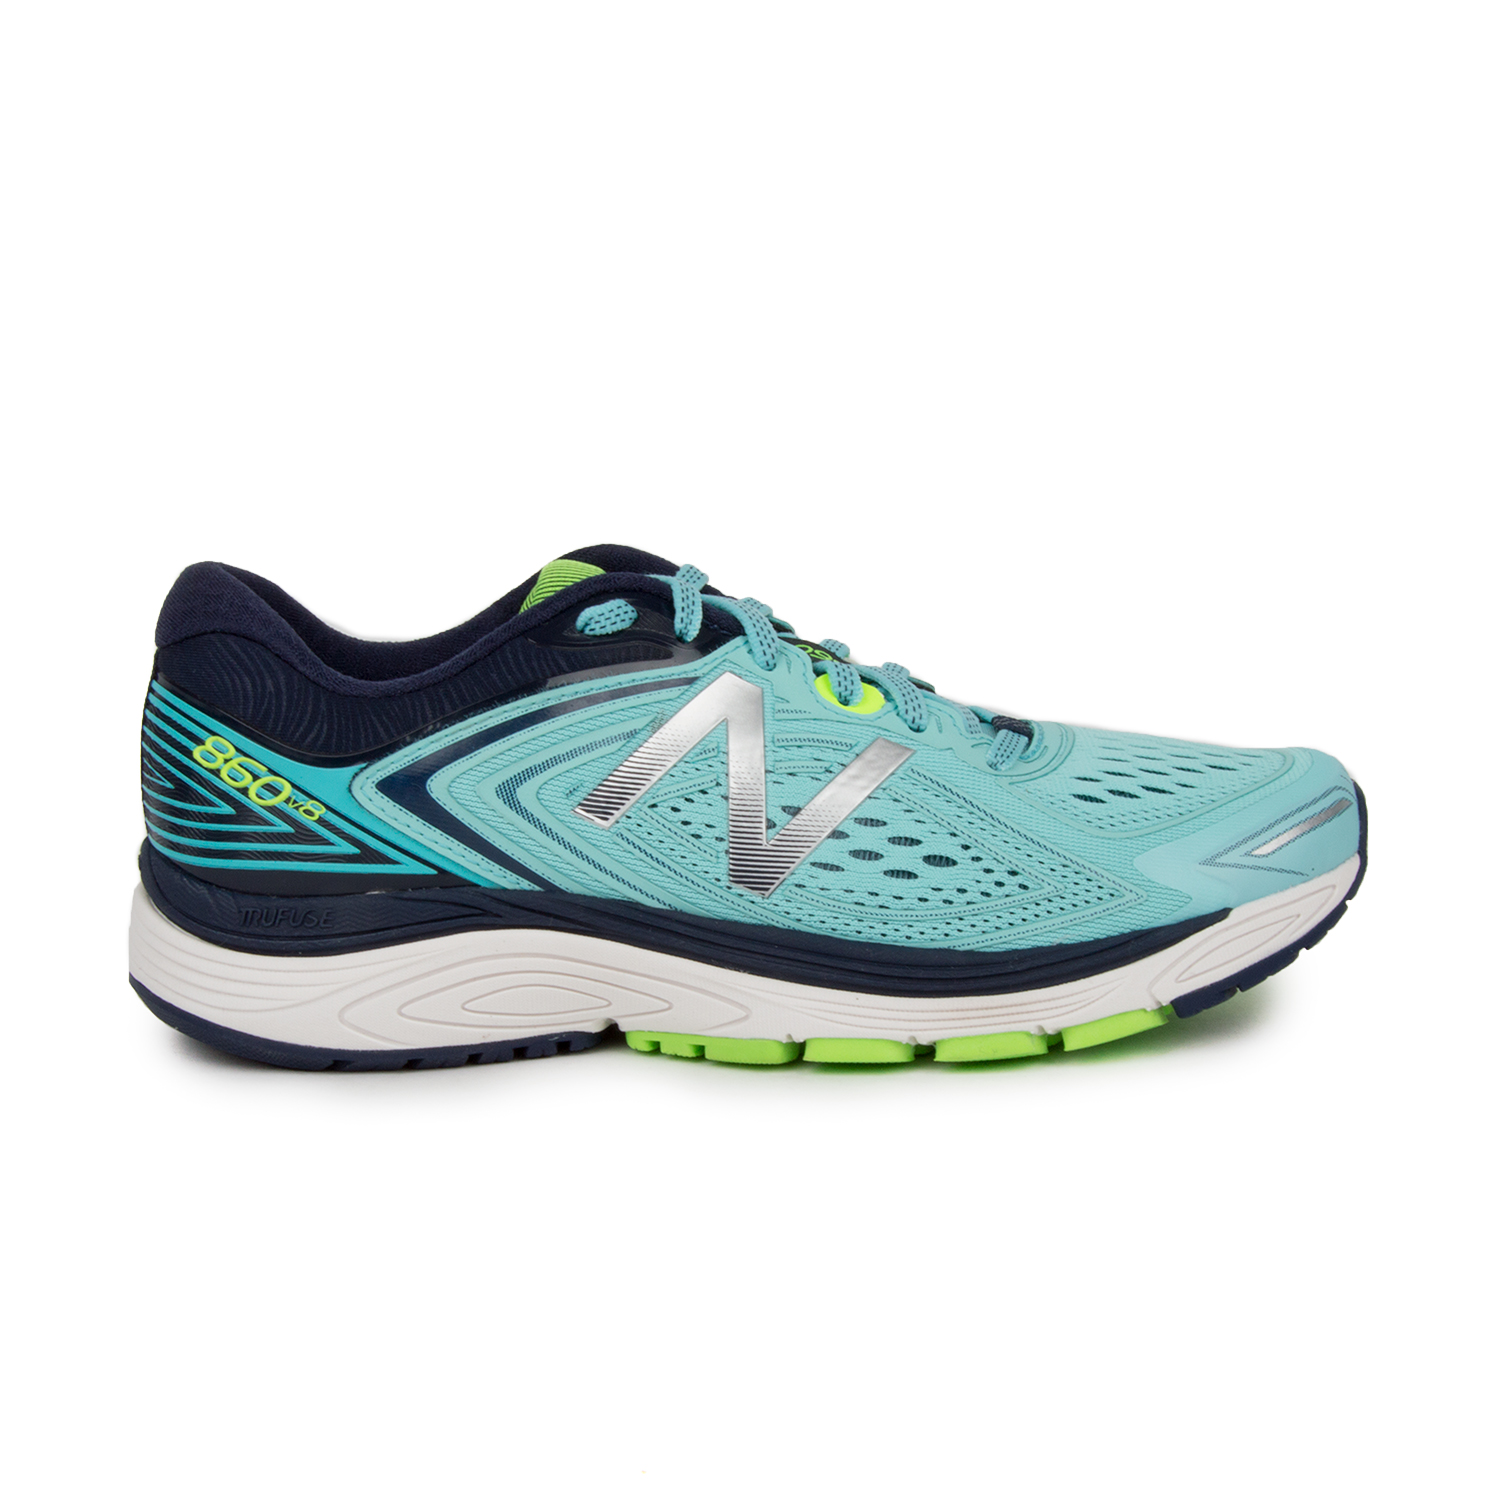 New Balance Womens Track Shoes